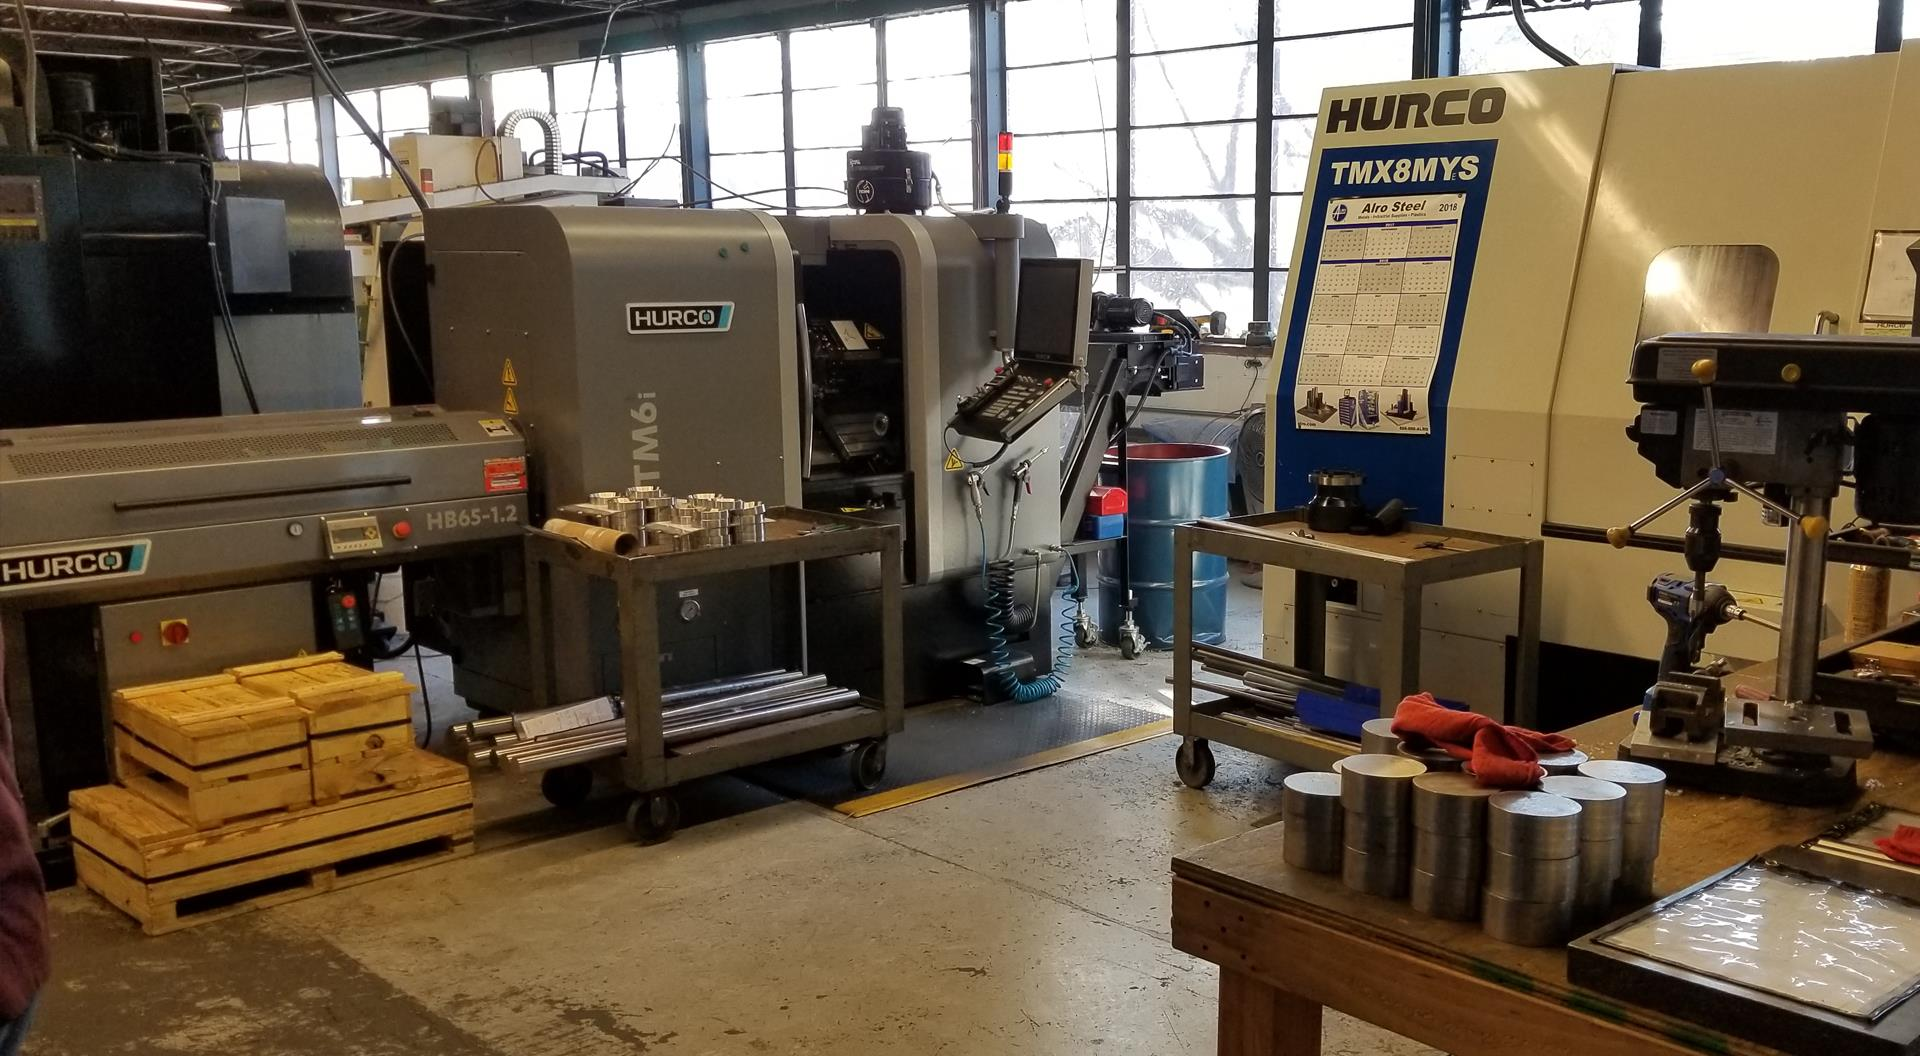 hurco CNC machinists | KLT Group Inc.